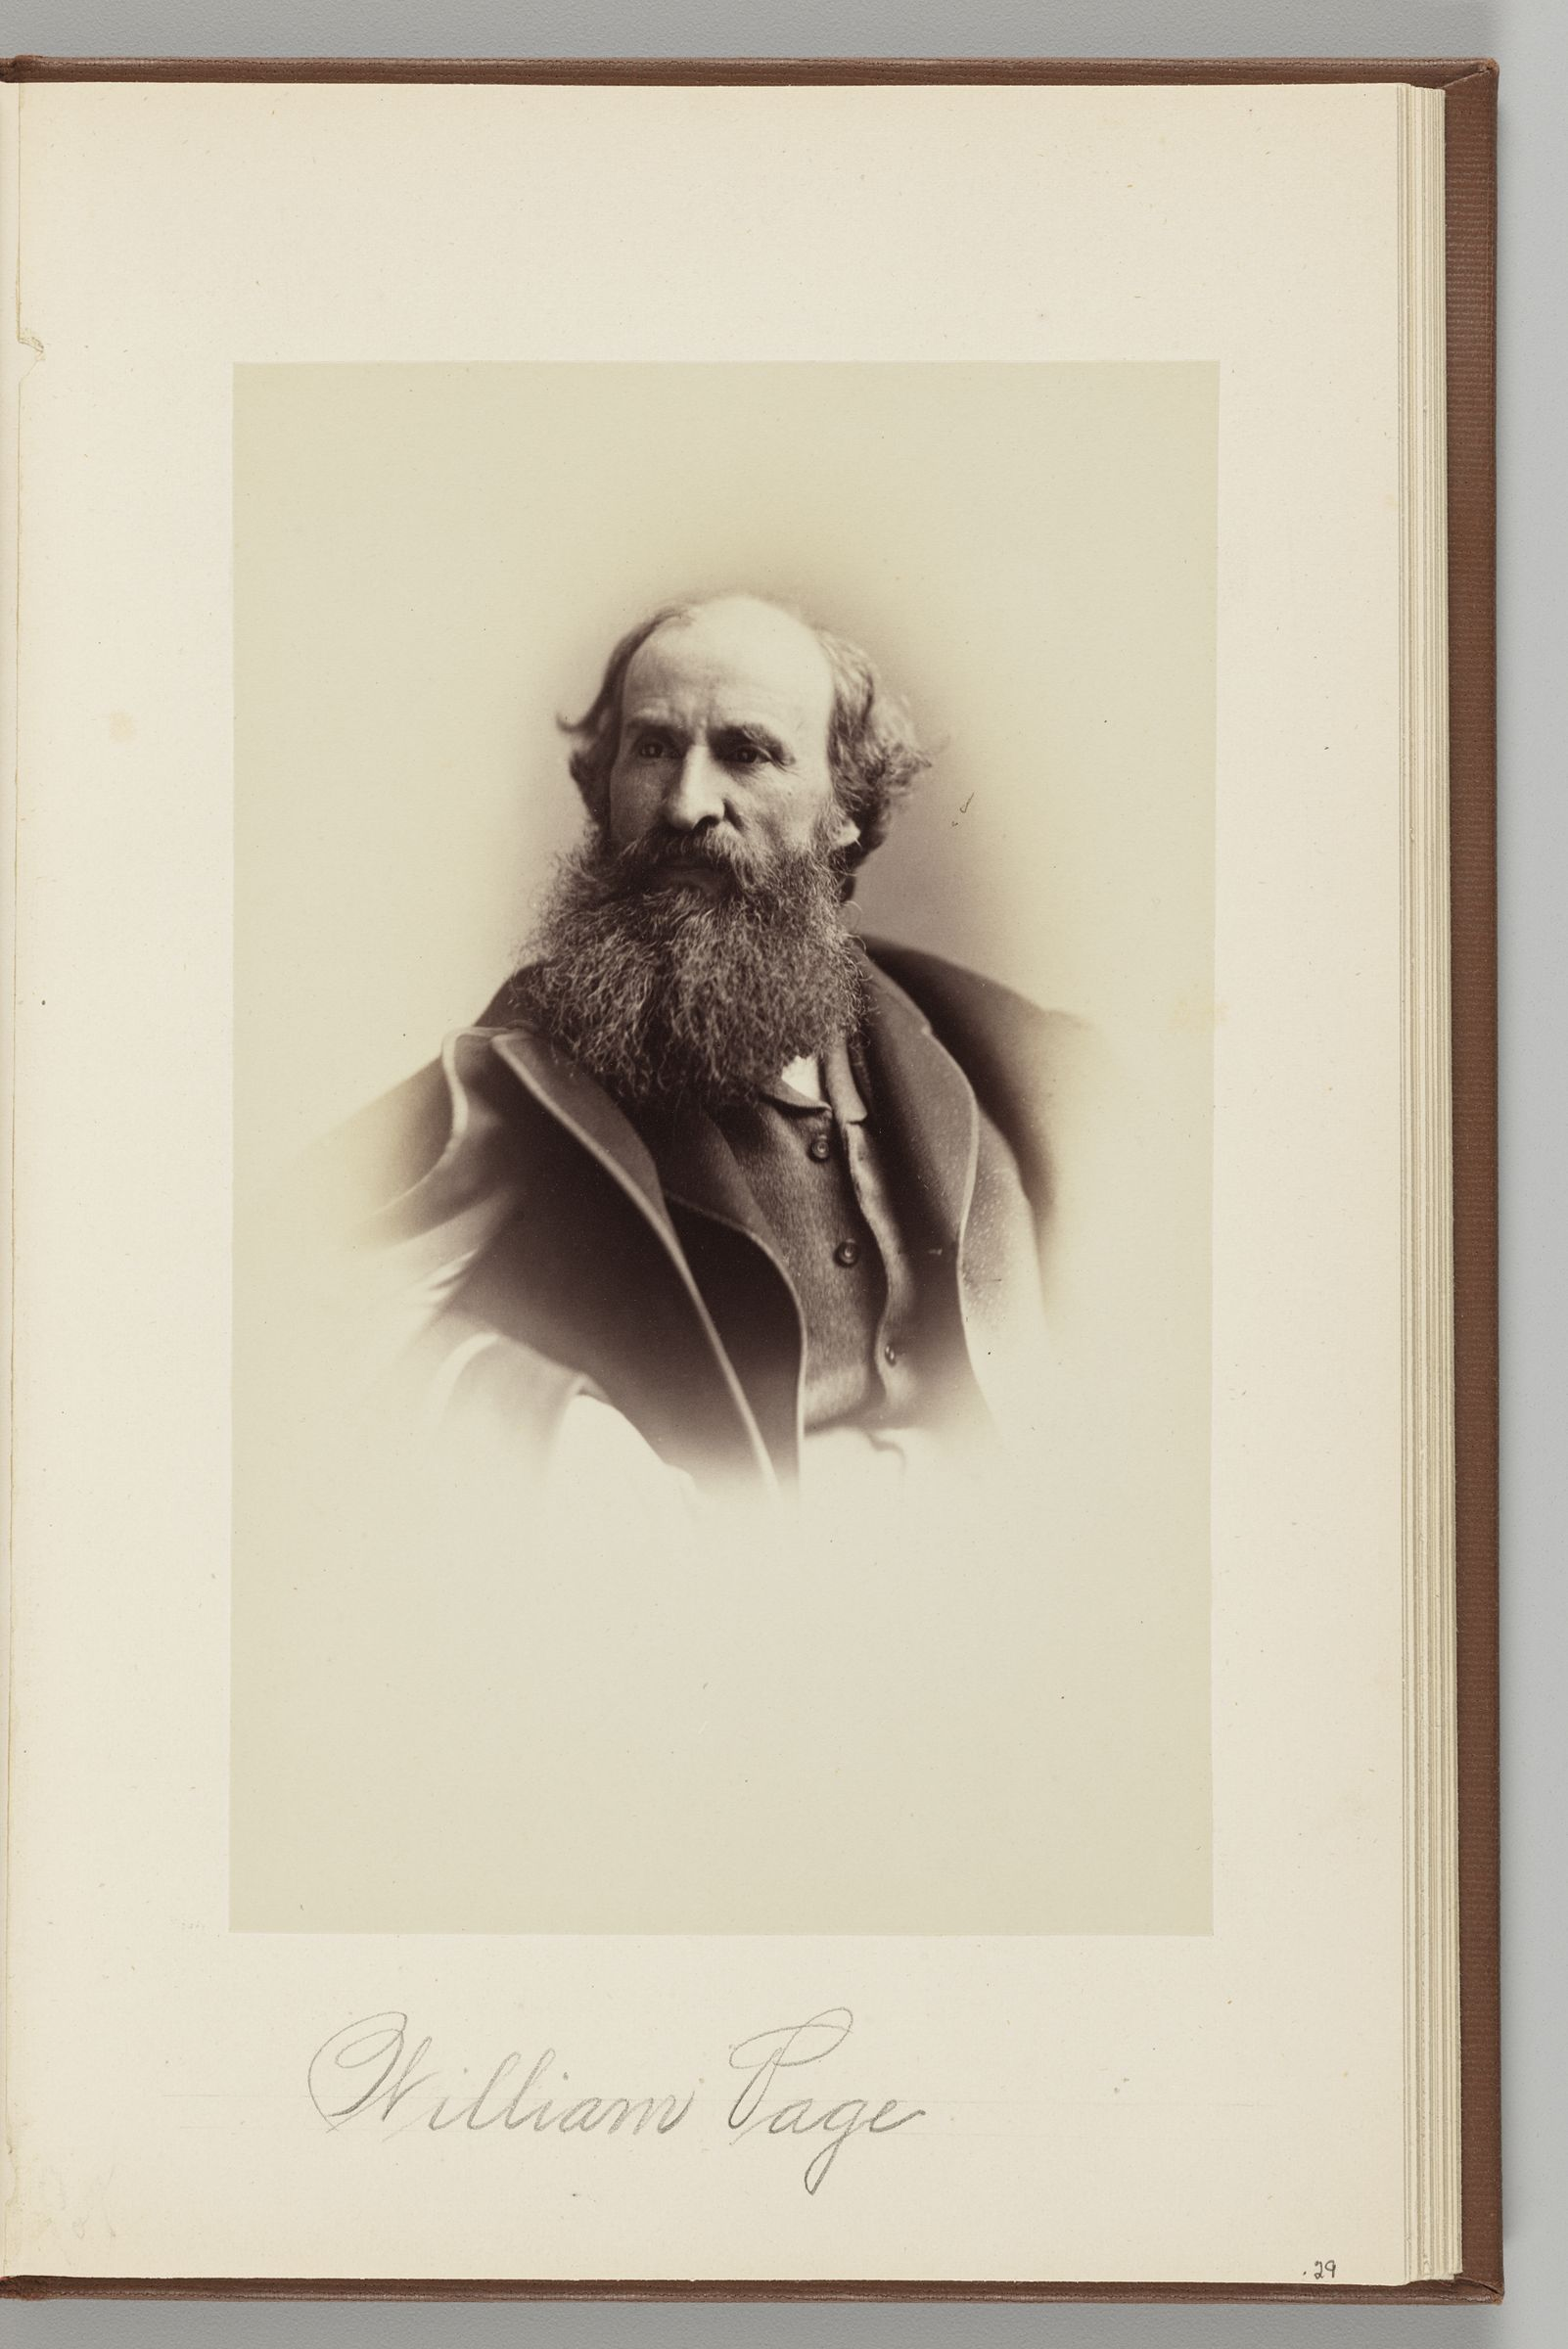 William Page (1811-1885)